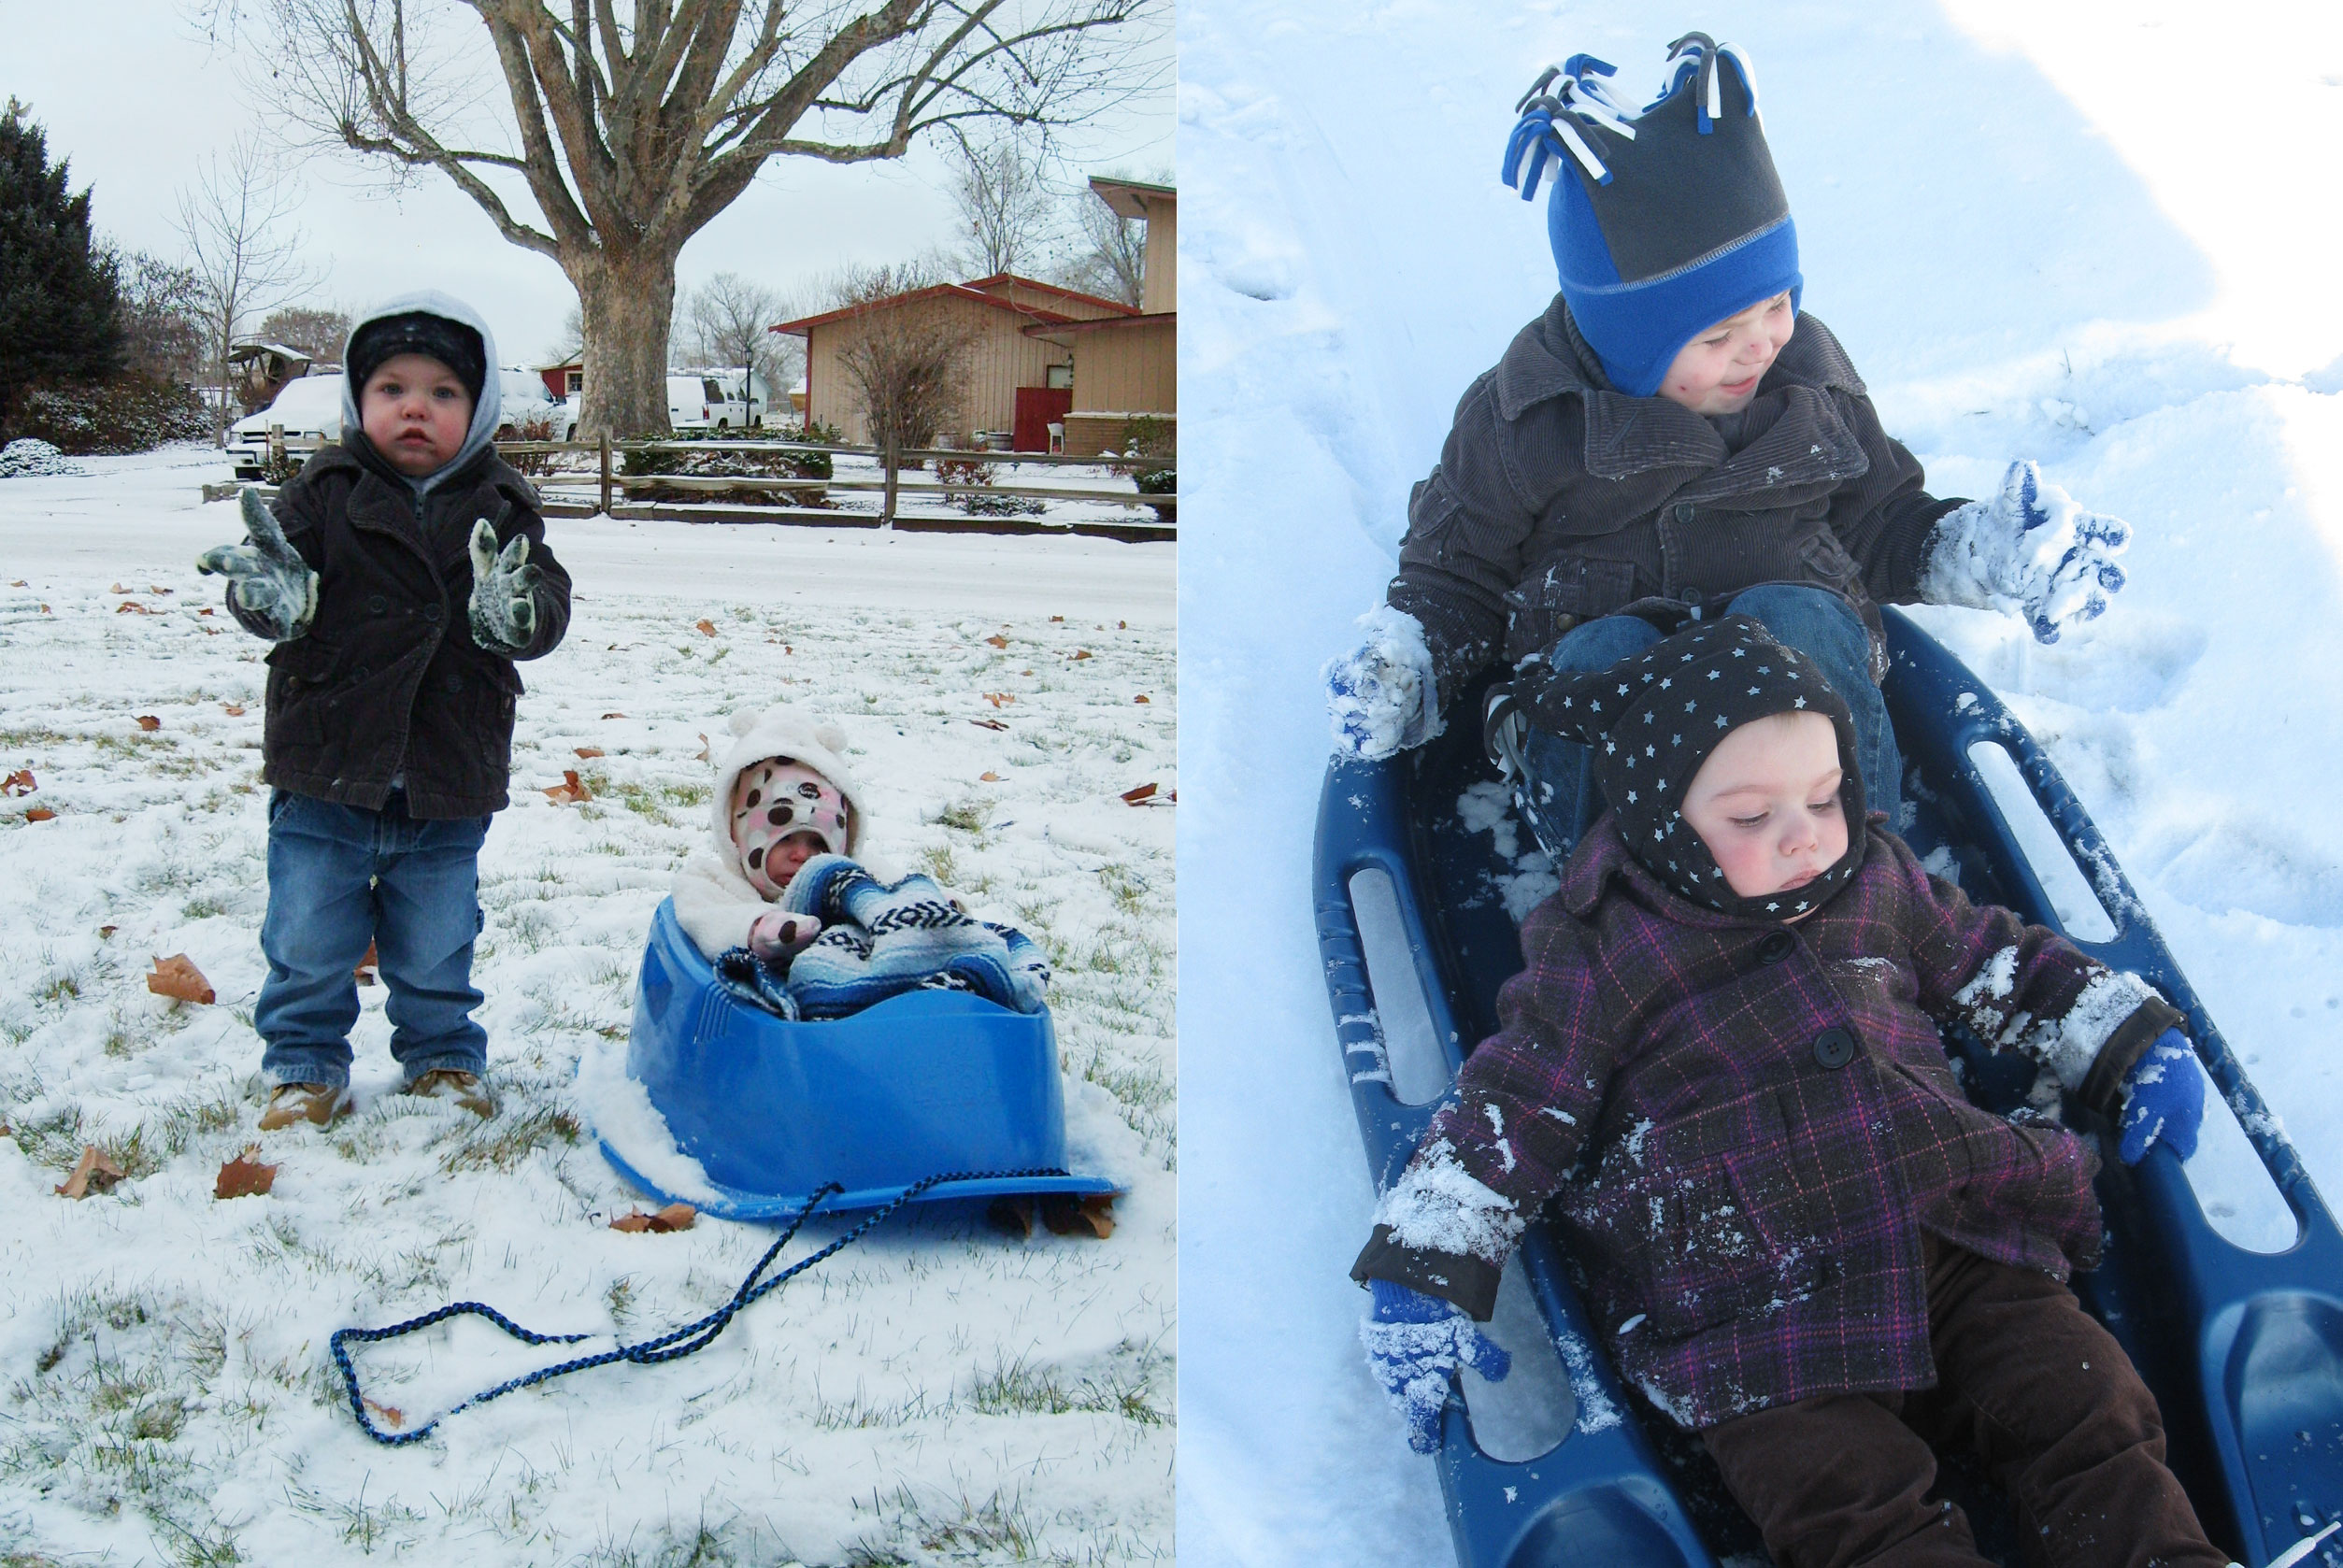 Adored by Meghan's holiday traditions to start or continue with your family Go Sledding